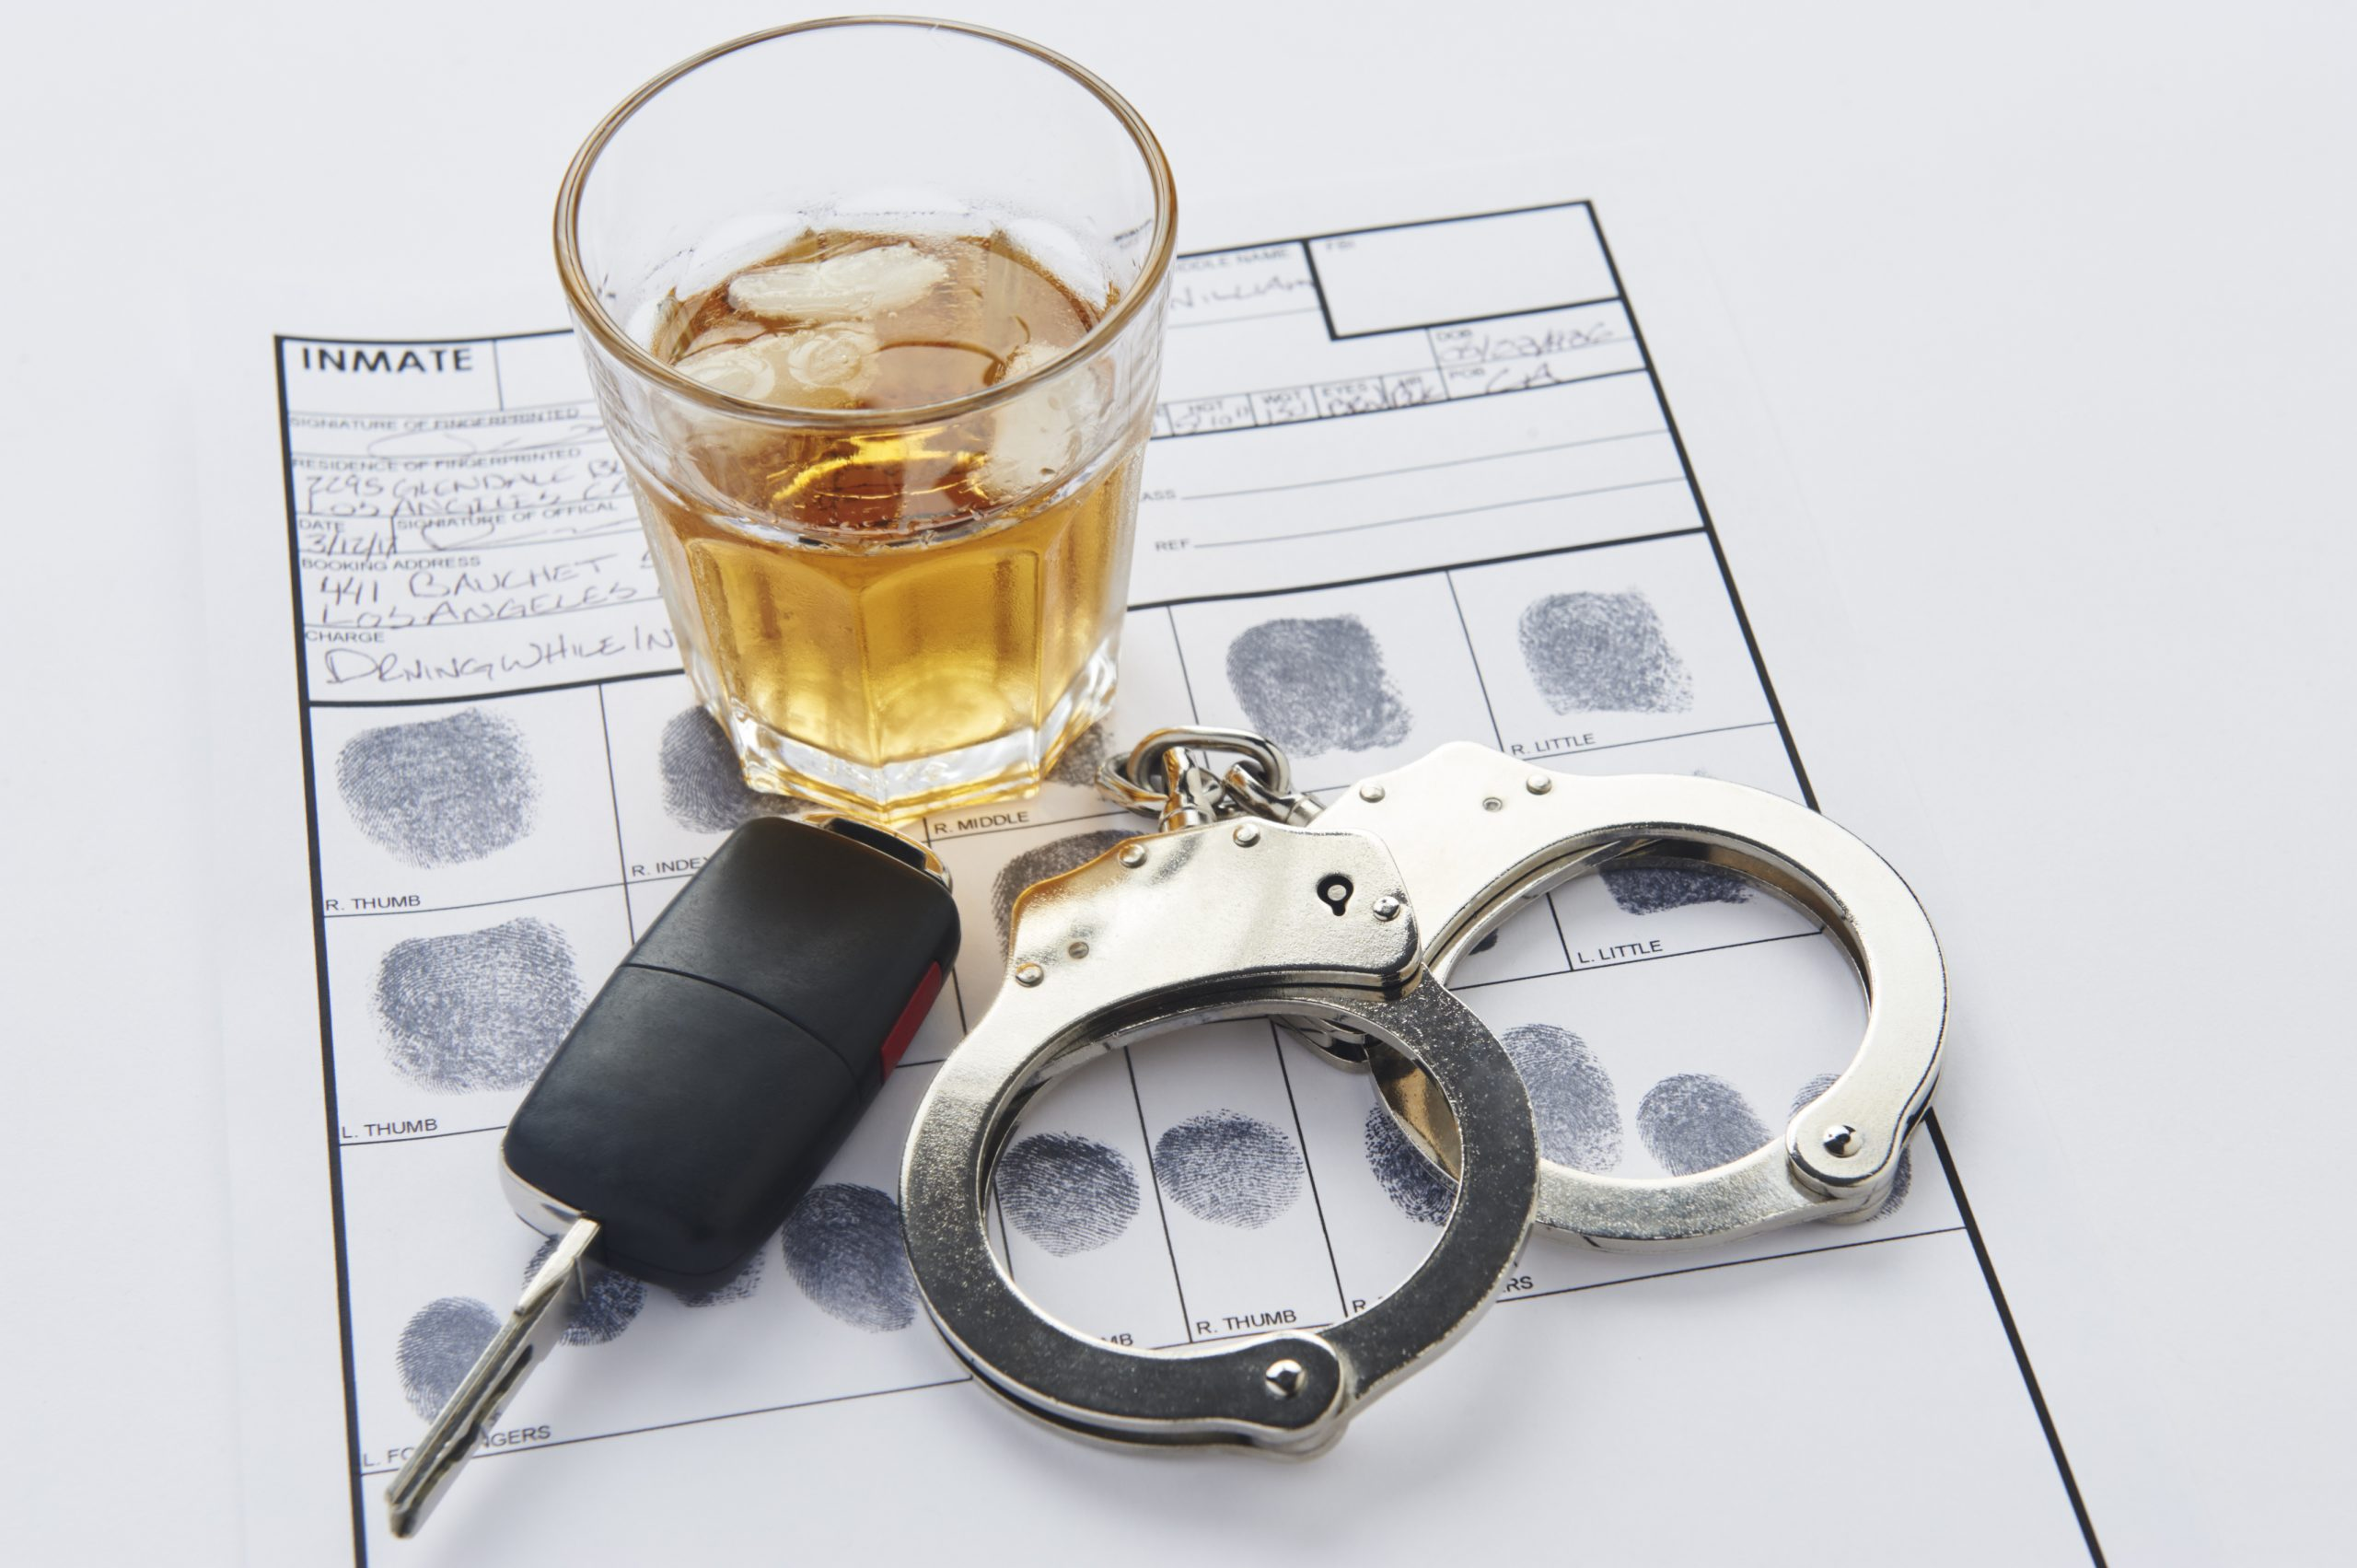 Phoenix DUI Defense Lawyer Alcohol, keys, and handcuffs placed on booking sheet